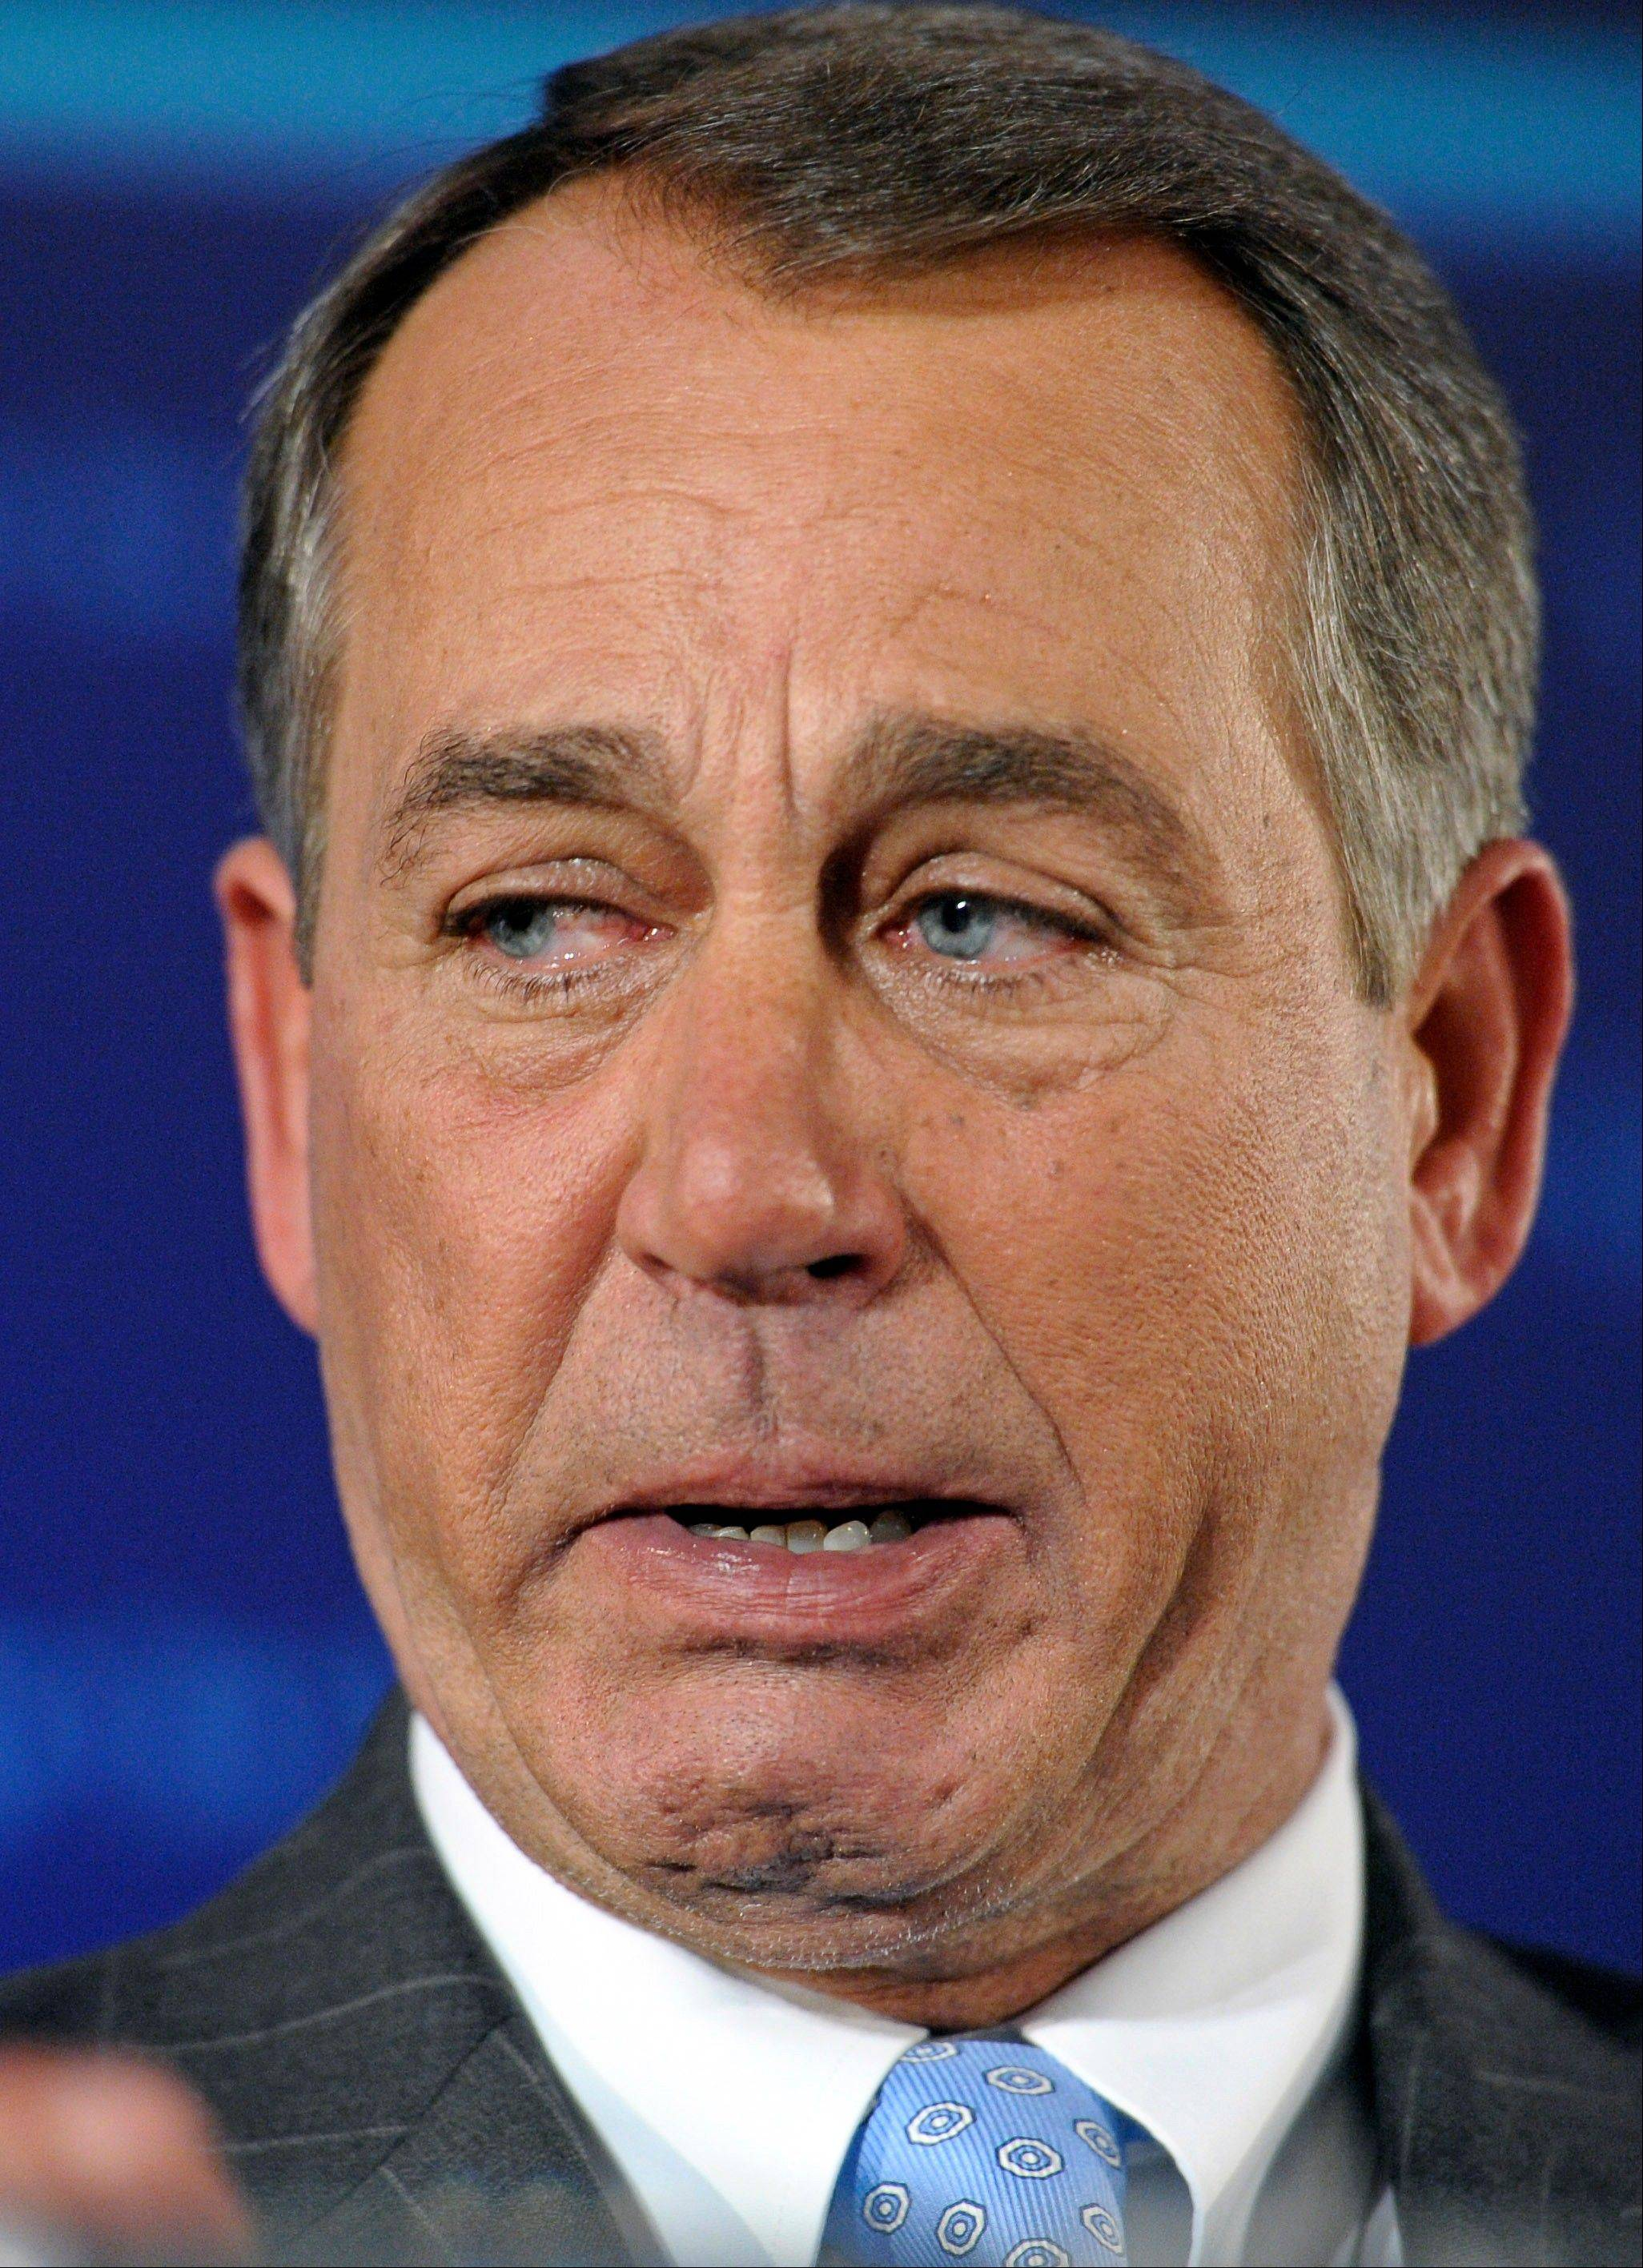 As Speaker of the House, Republican John Boehner holds one of the most powerful positions in the U.S. government -- and he cries so frequently that Twitter jokesters have taken to calling him the weeper of the house. He tears up easily, particularly when talking about the American dream.